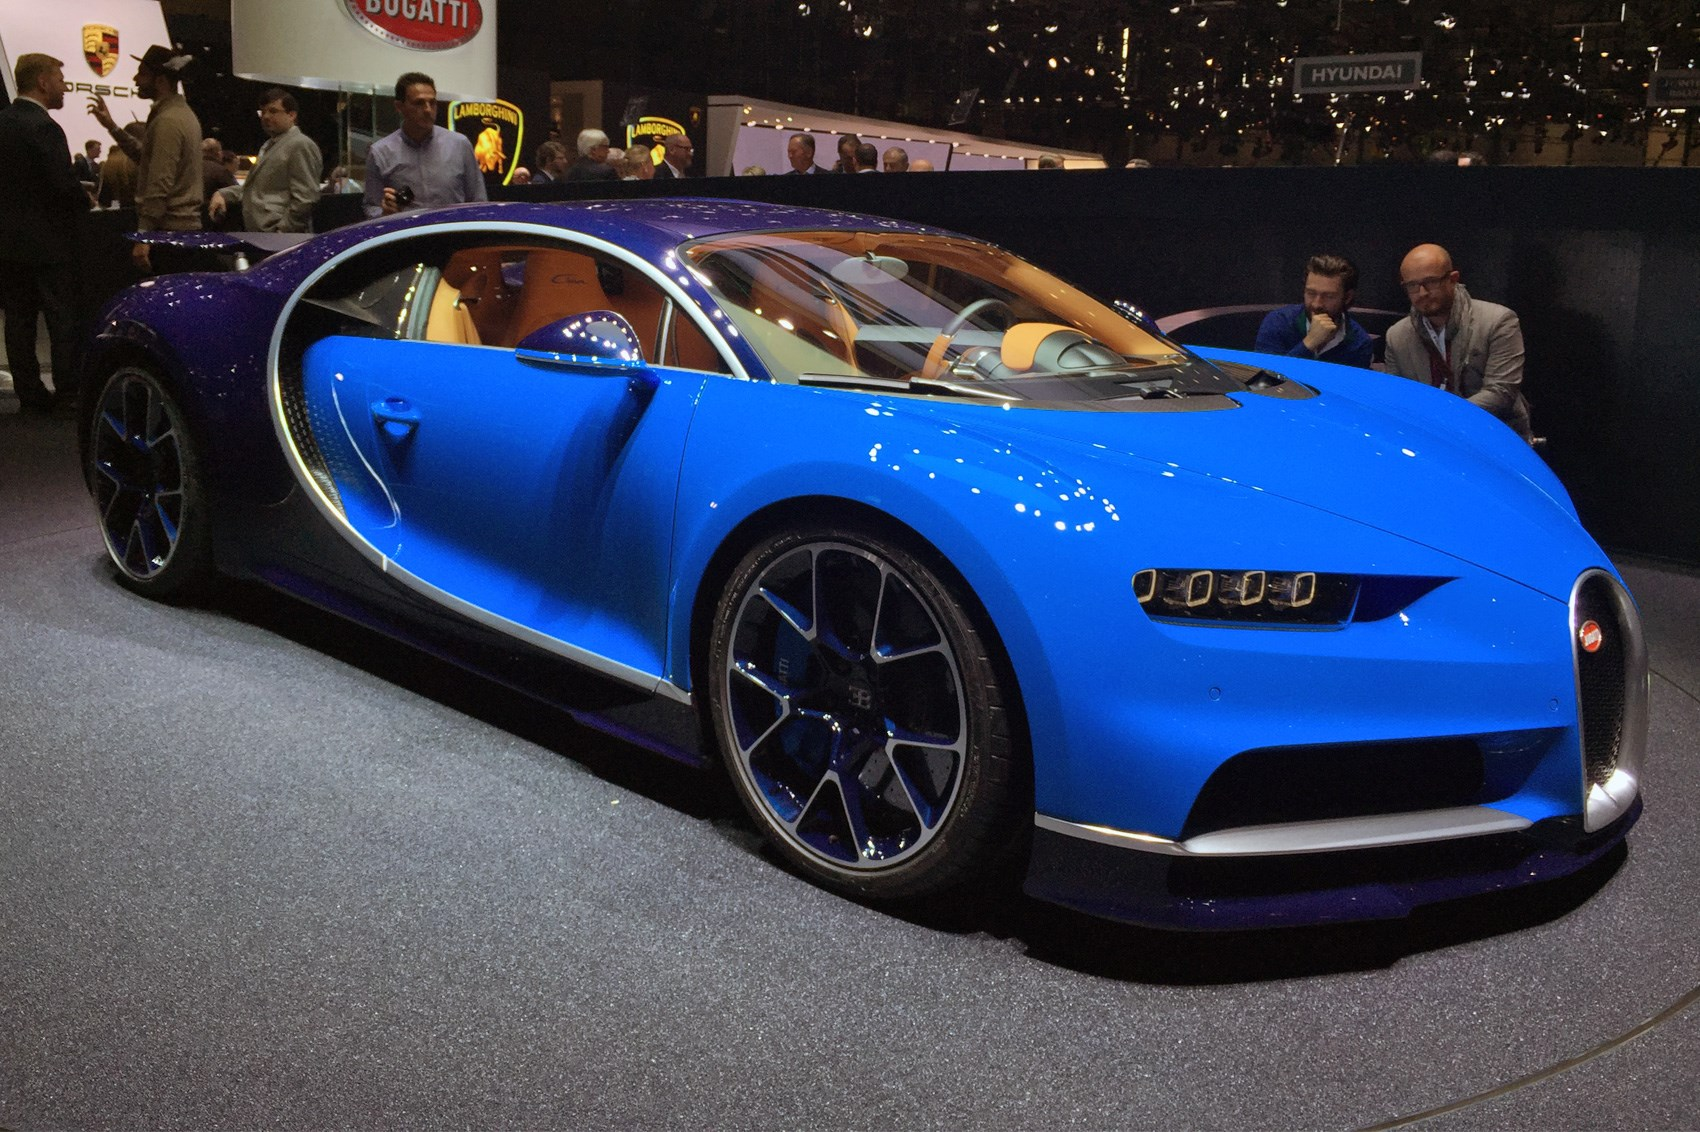 Ultrablogus  Mesmerizing Bugatti Chiron Revealed At Geneva  The World Has A New  With Lovely Bugatti Chiron Revealed At Geneva  The World Has A New Fastest Production Car By Car Magazine With Agreeable  Camaro Interior Also  Dodge Dakota Interior In Addition Ford Edge Interior Space And  Monte Carlo Interior As Well As  Mustang Interior Additionally How To Unlock Interior Door From Carmagazinecouk With Ultrablogus  Lovely Bugatti Chiron Revealed At Geneva  The World Has A New  With Agreeable Bugatti Chiron Revealed At Geneva  The World Has A New Fastest Production Car By Car Magazine And Mesmerizing  Camaro Interior Also  Dodge Dakota Interior In Addition Ford Edge Interior Space From Carmagazinecouk